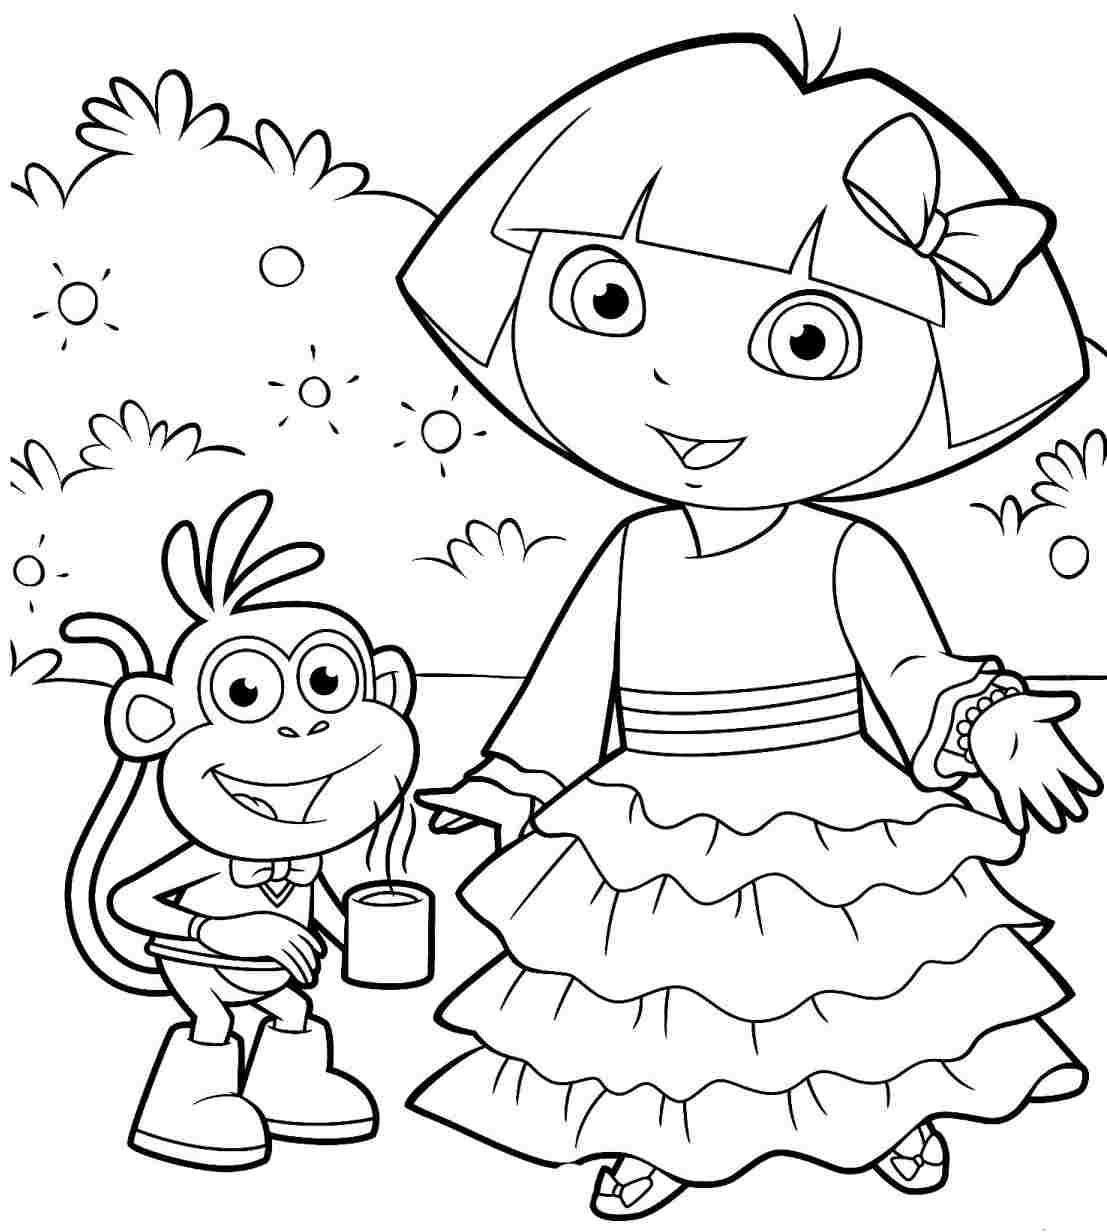 dora coloring page craftsactvities and worksheets for preschooltoddler and dora page coloring